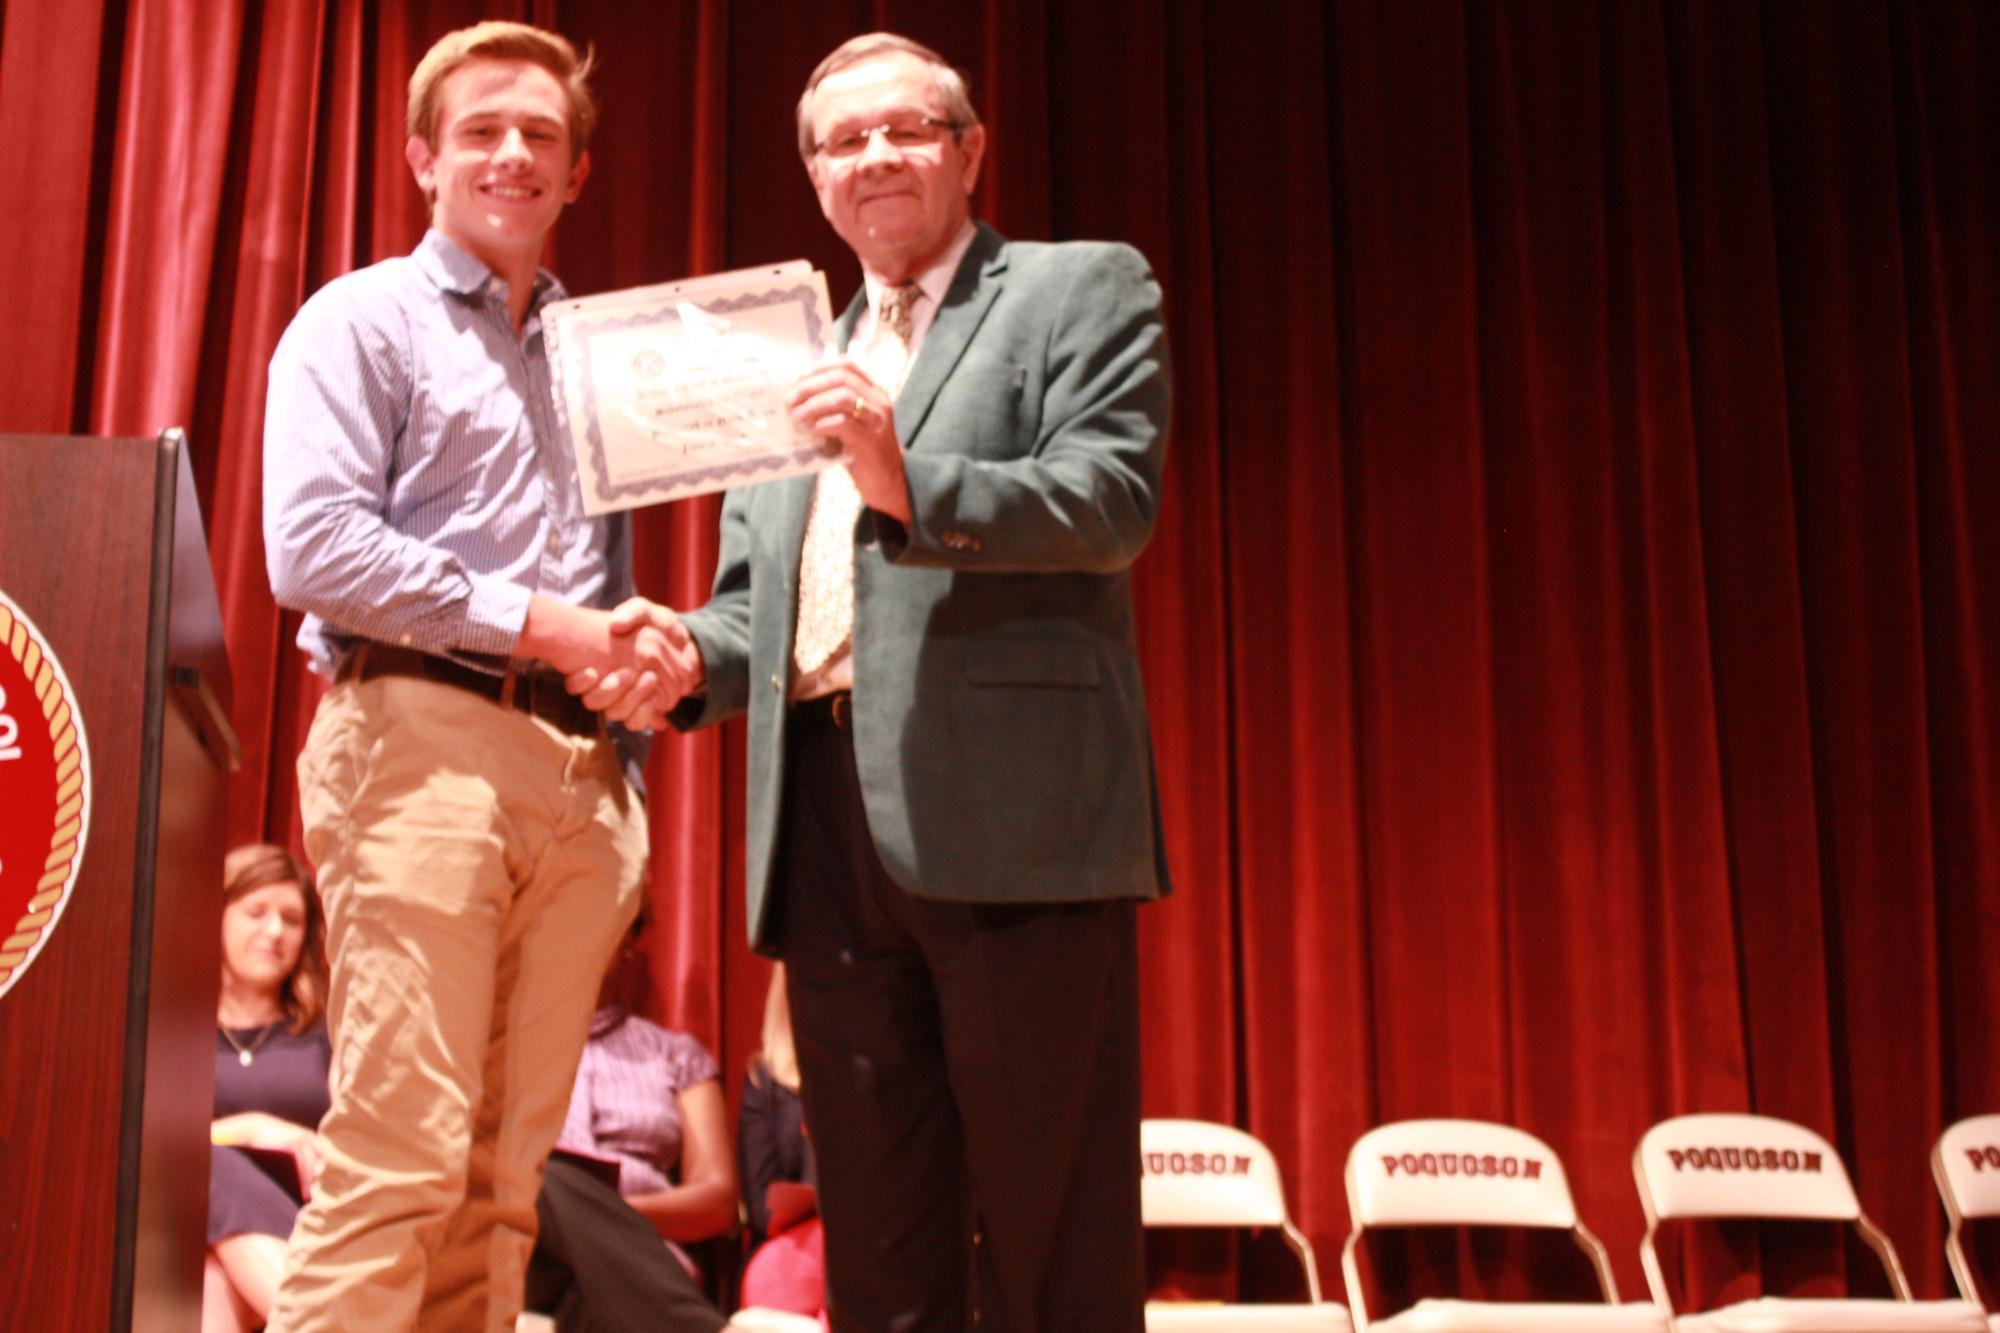 Noah Dunn--Kiwanis Club of Poquoson Scholarship